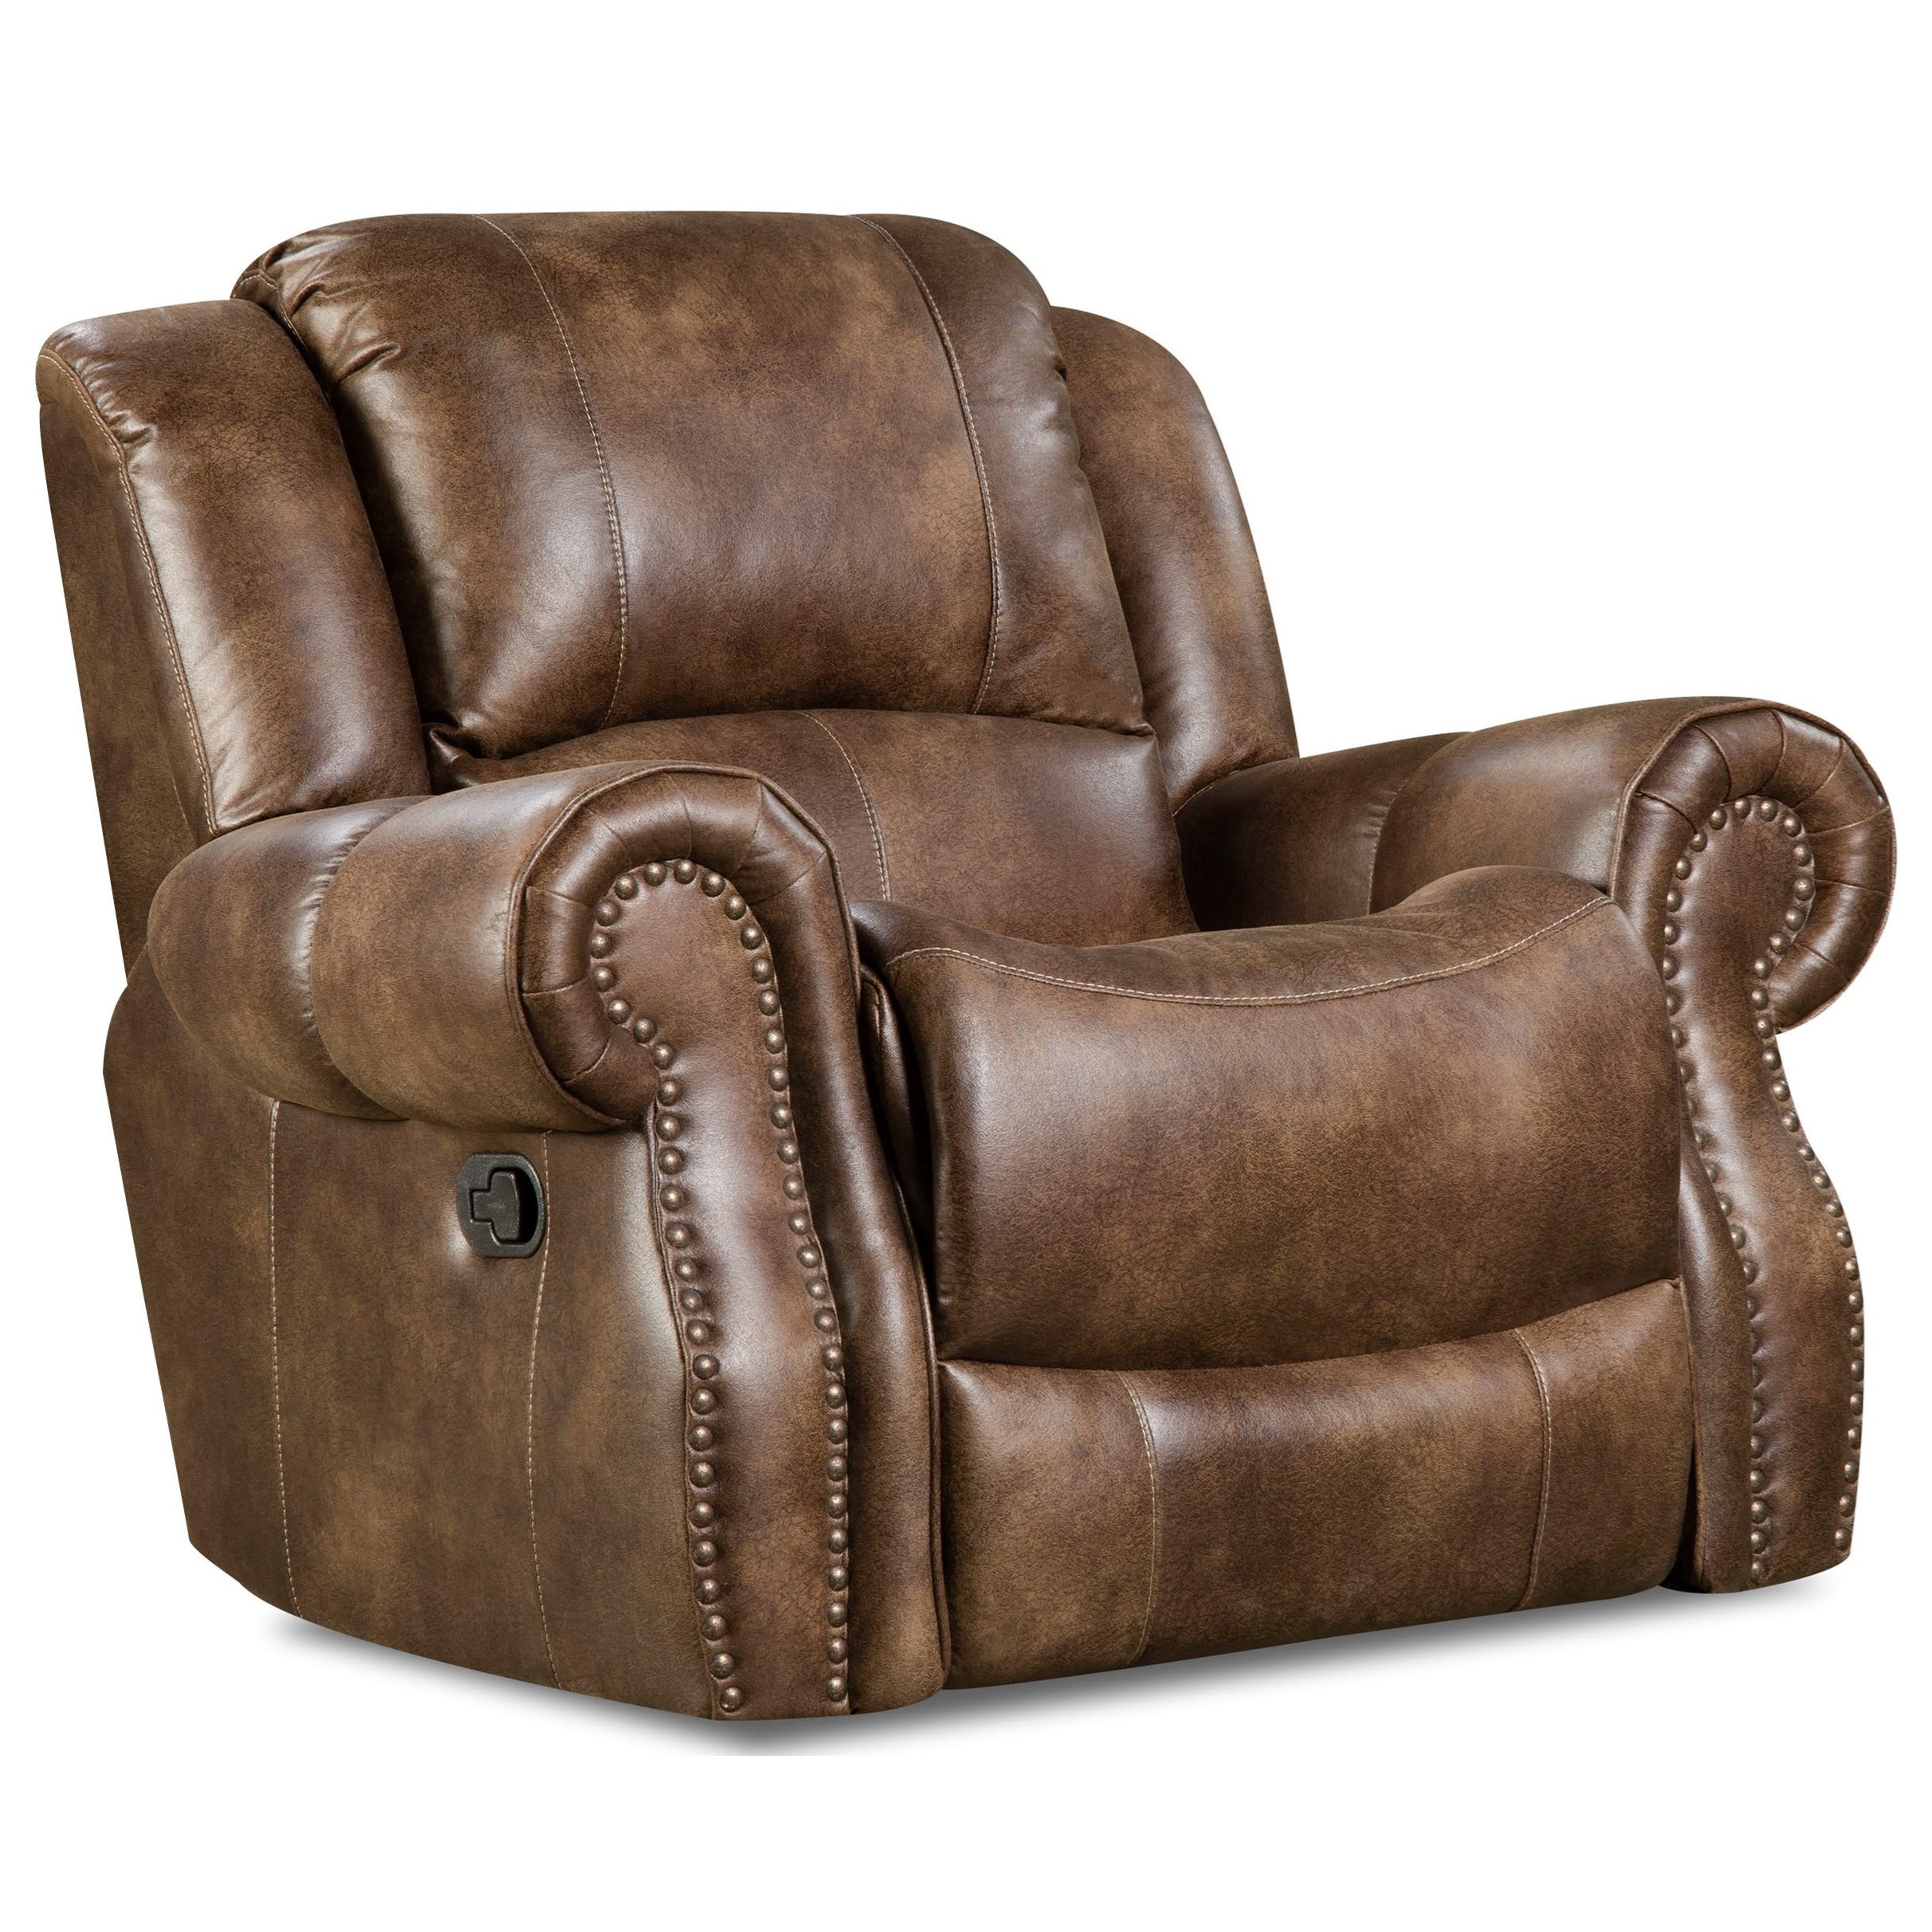 69901 Rocker Recliner Virginia Furniture Market Recliners